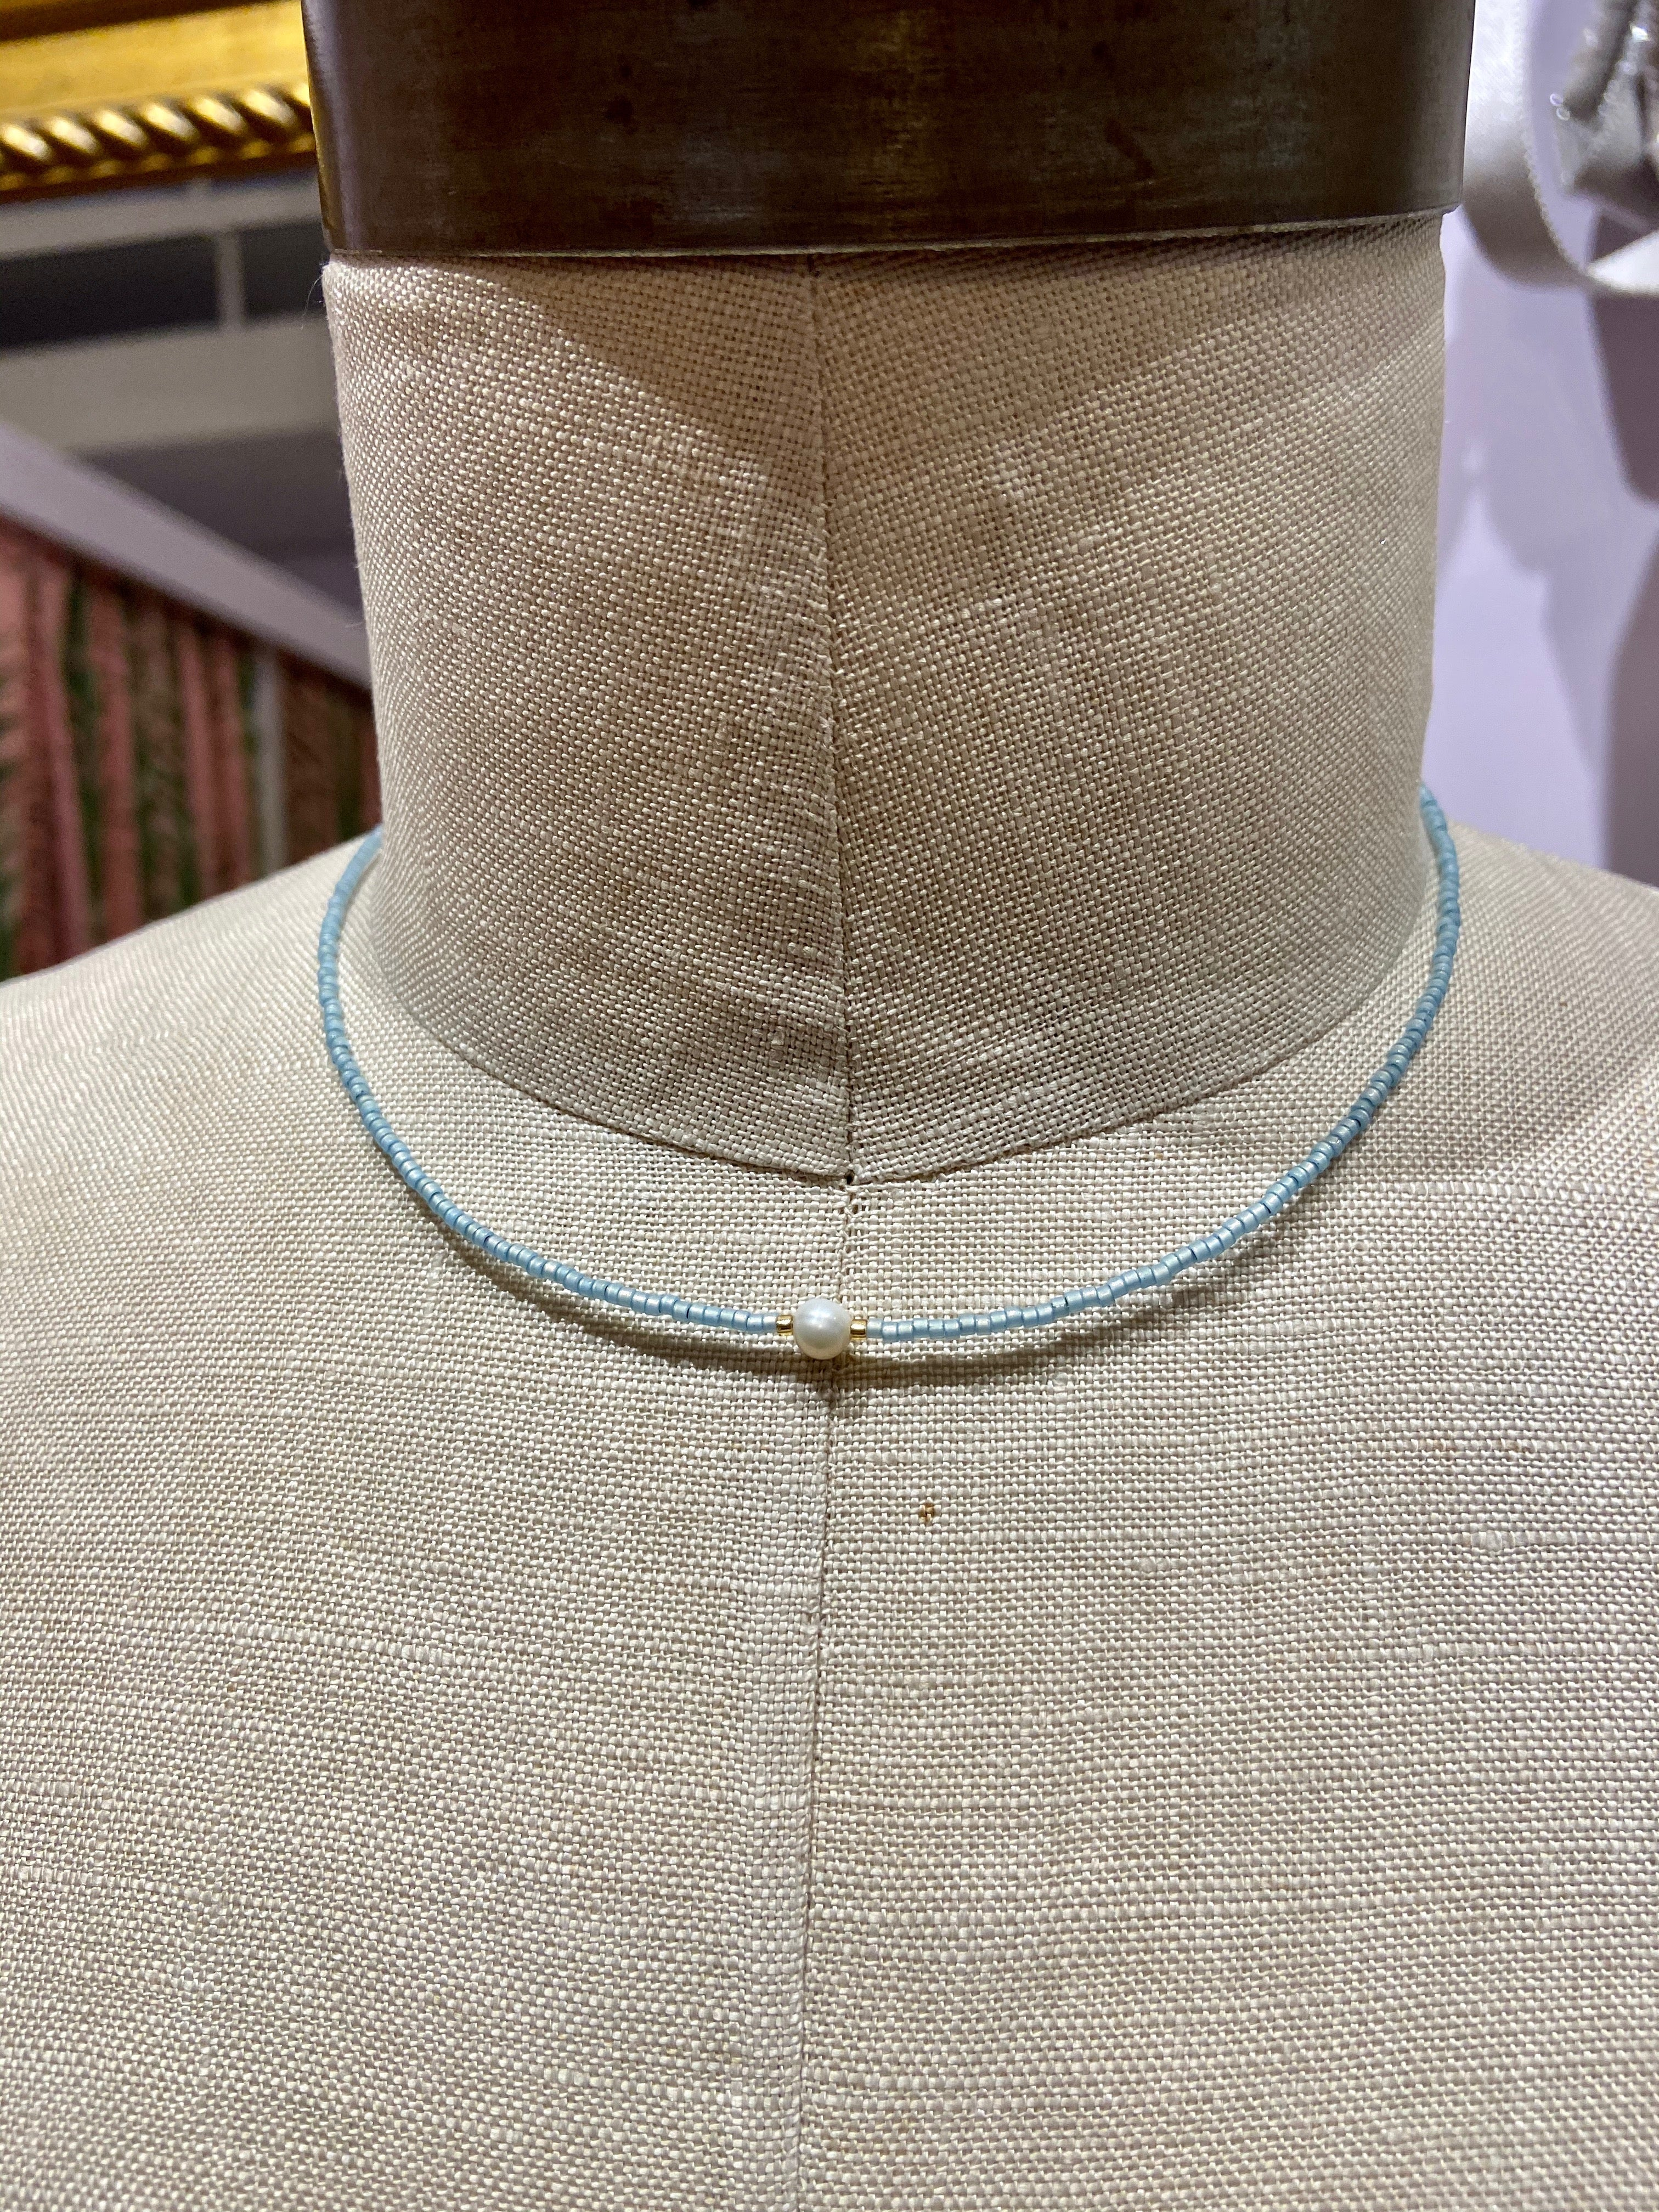 Shell Center Choker in Light Blue